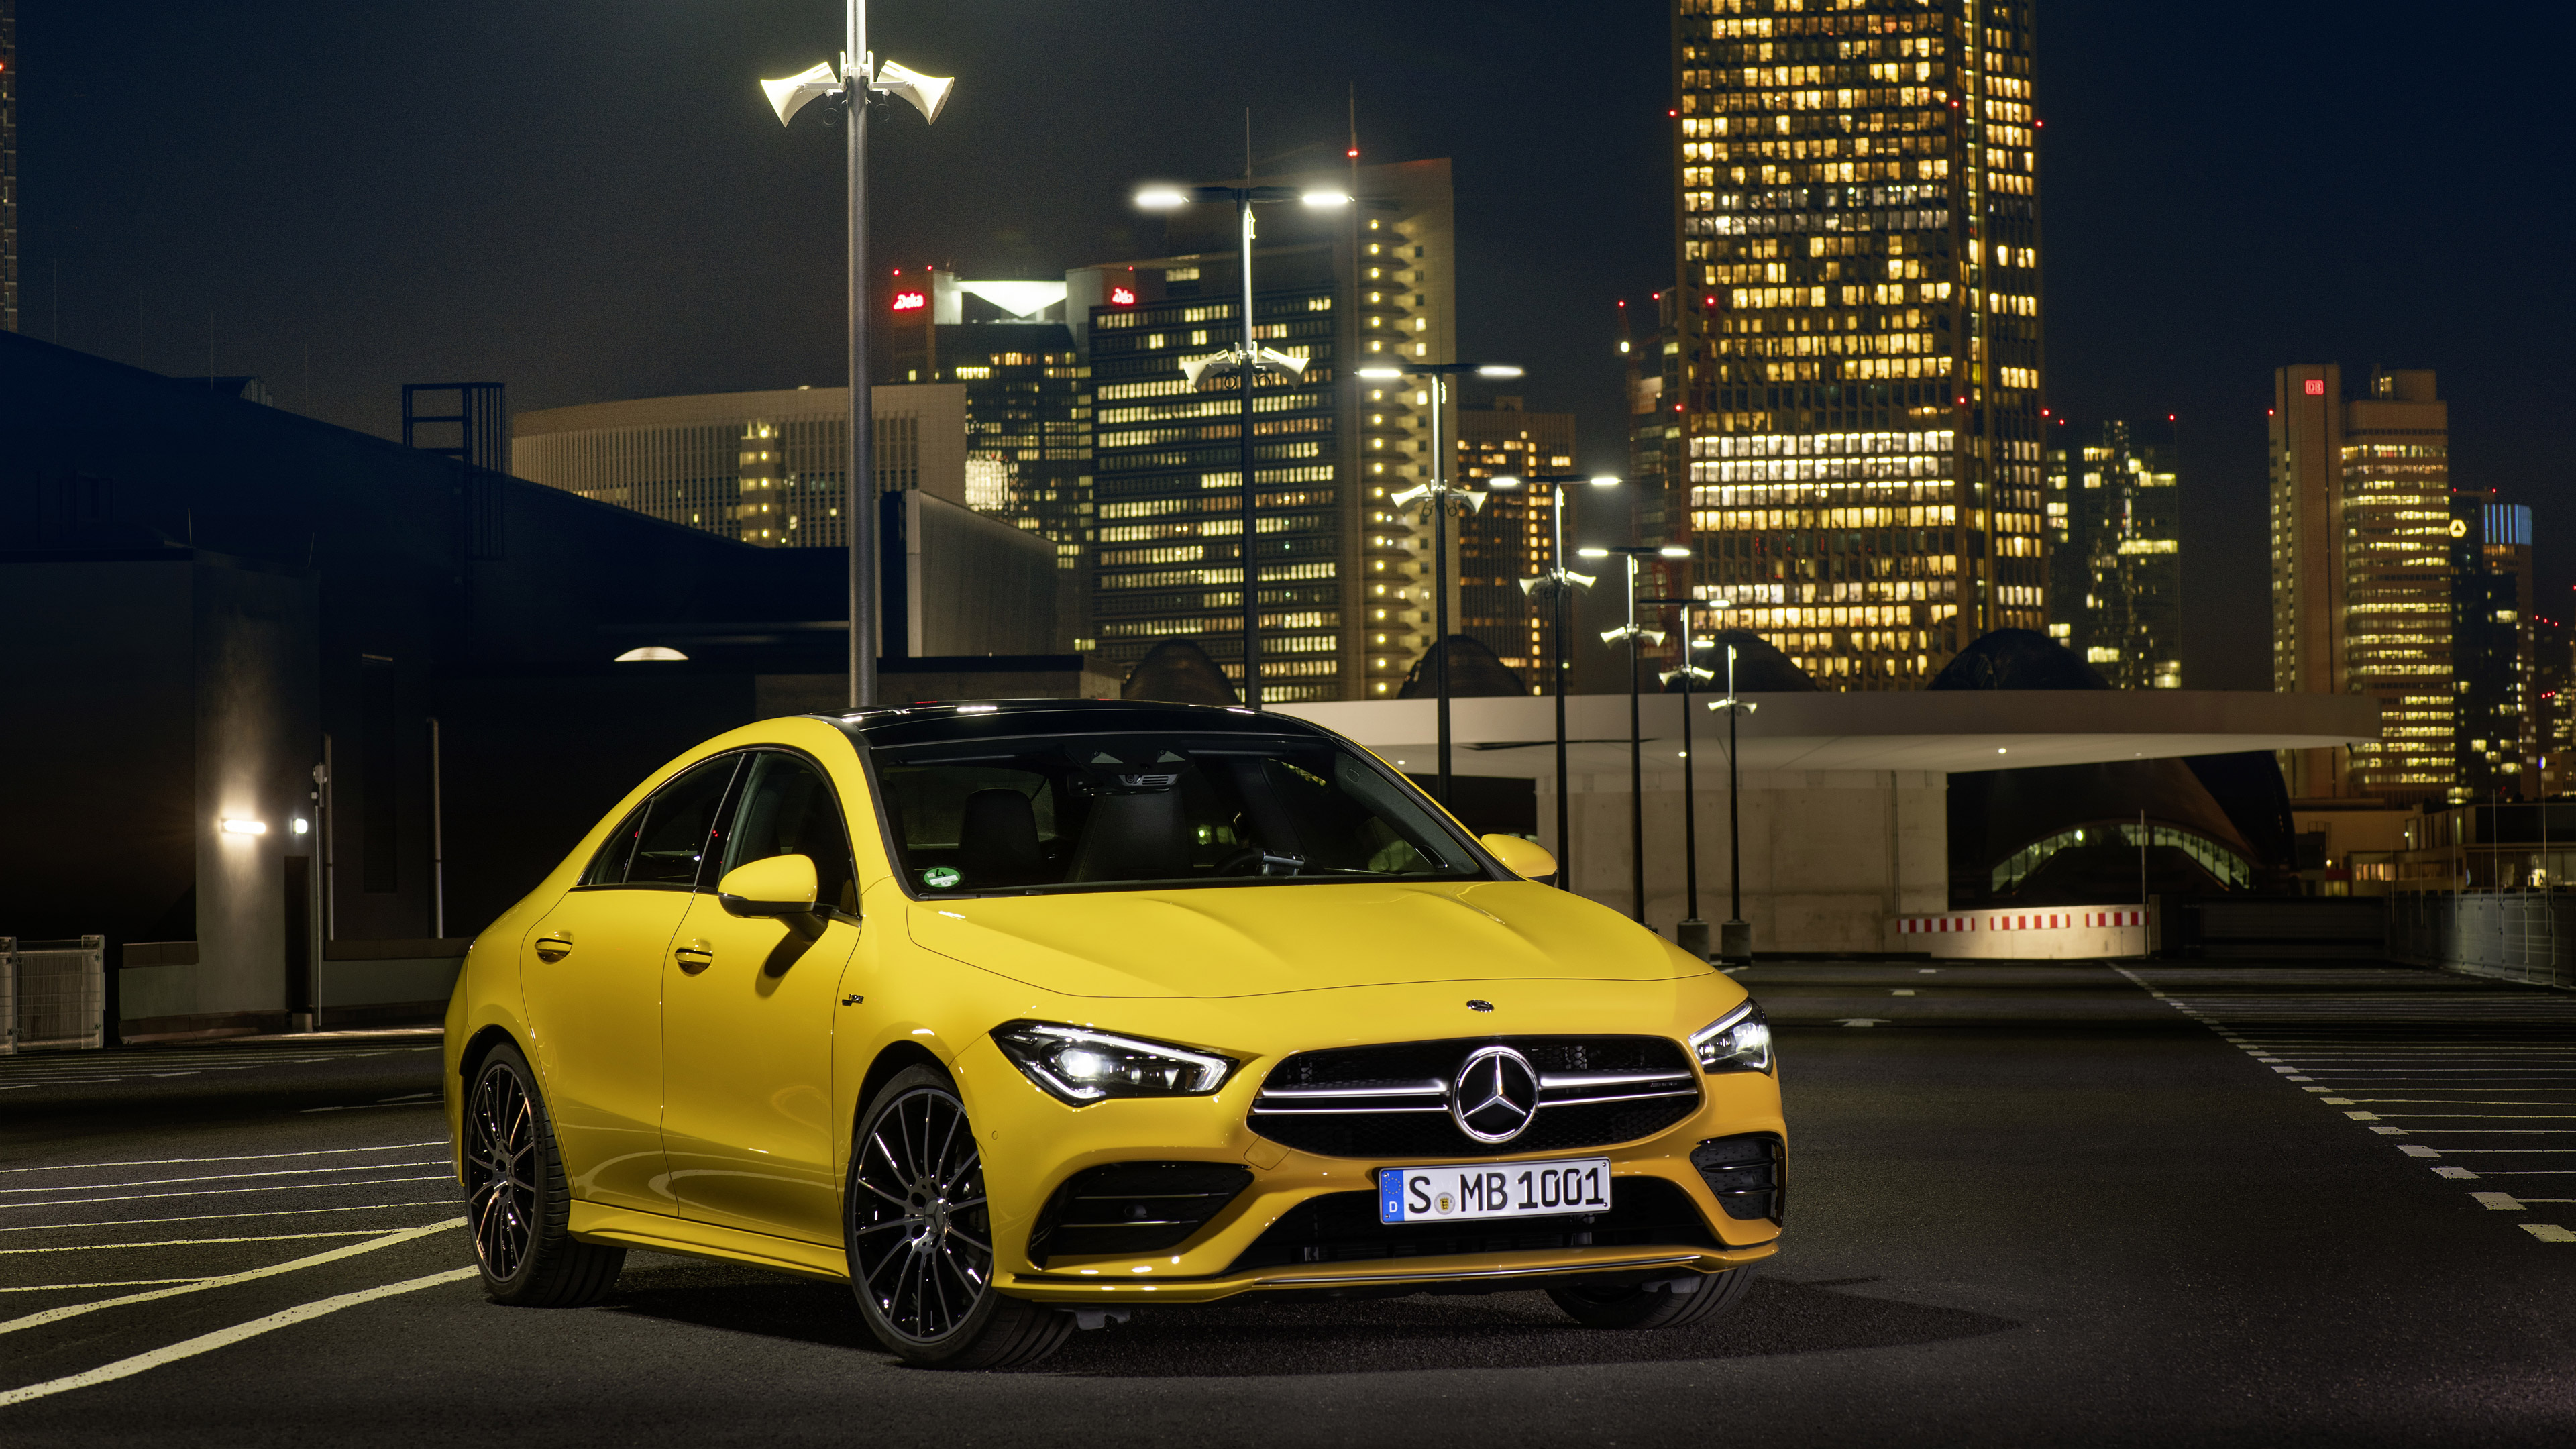 2020 Mercedes AMG CLA 35 4k Ultra HD Wallpaper Background Image 3840x2160